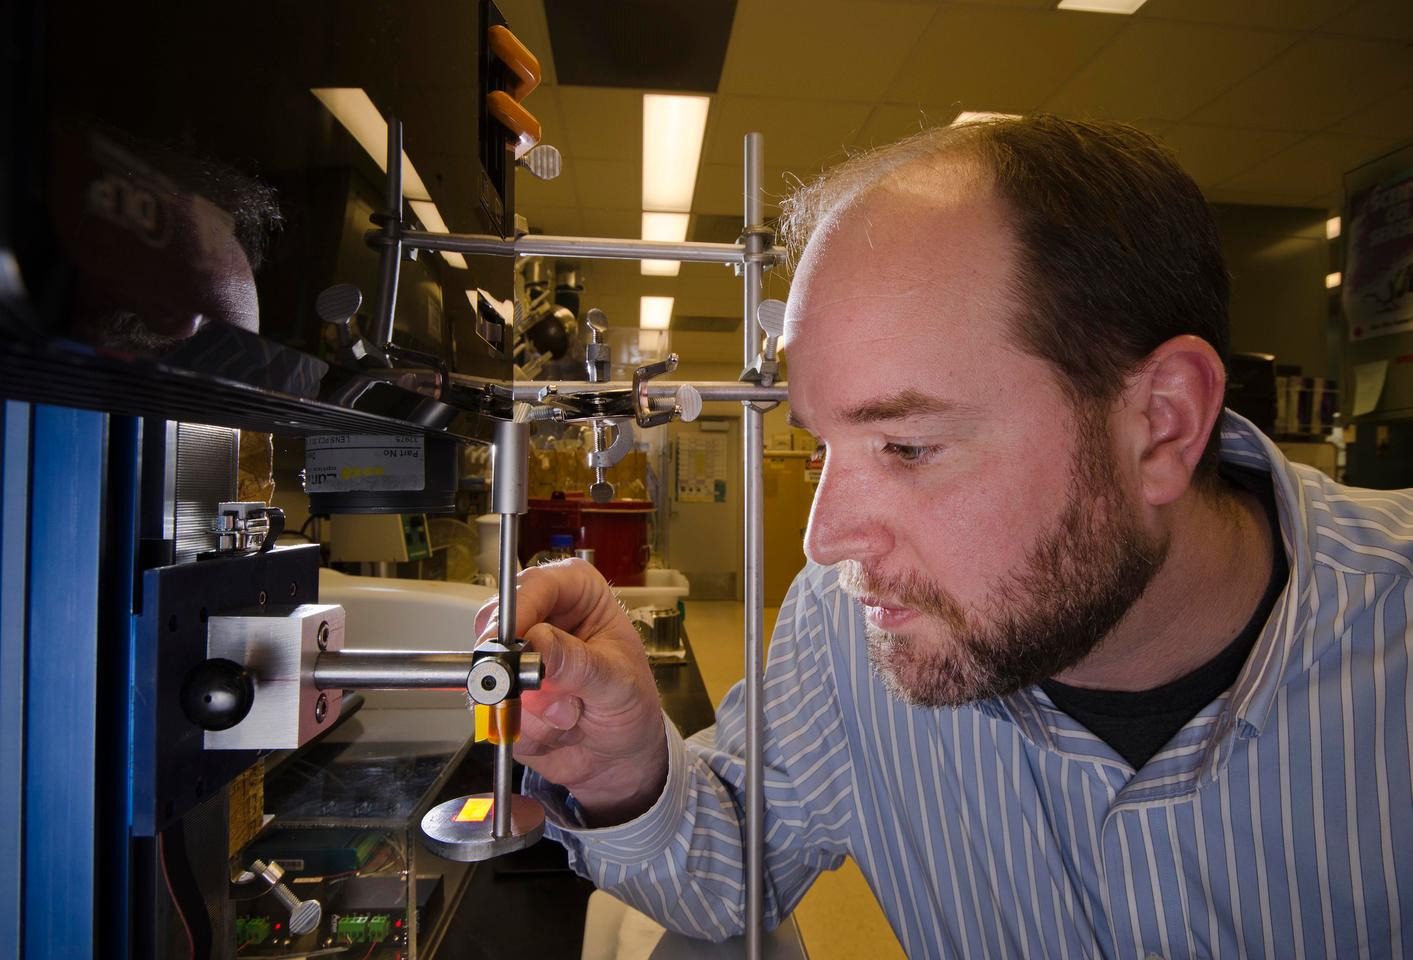 Organic materials chemist Shawn Dirk. one of the leaders of the team developing the Sandia Lab neural interface (Image: Sandia Labs)